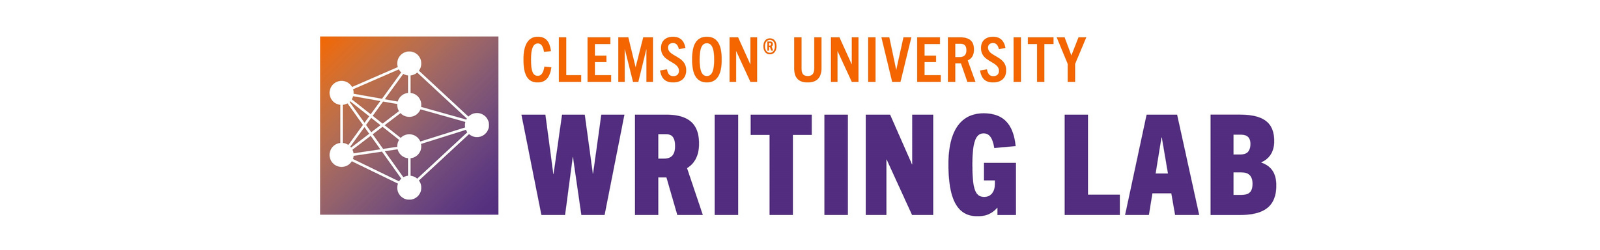 Clemson University Writing Lab Logo